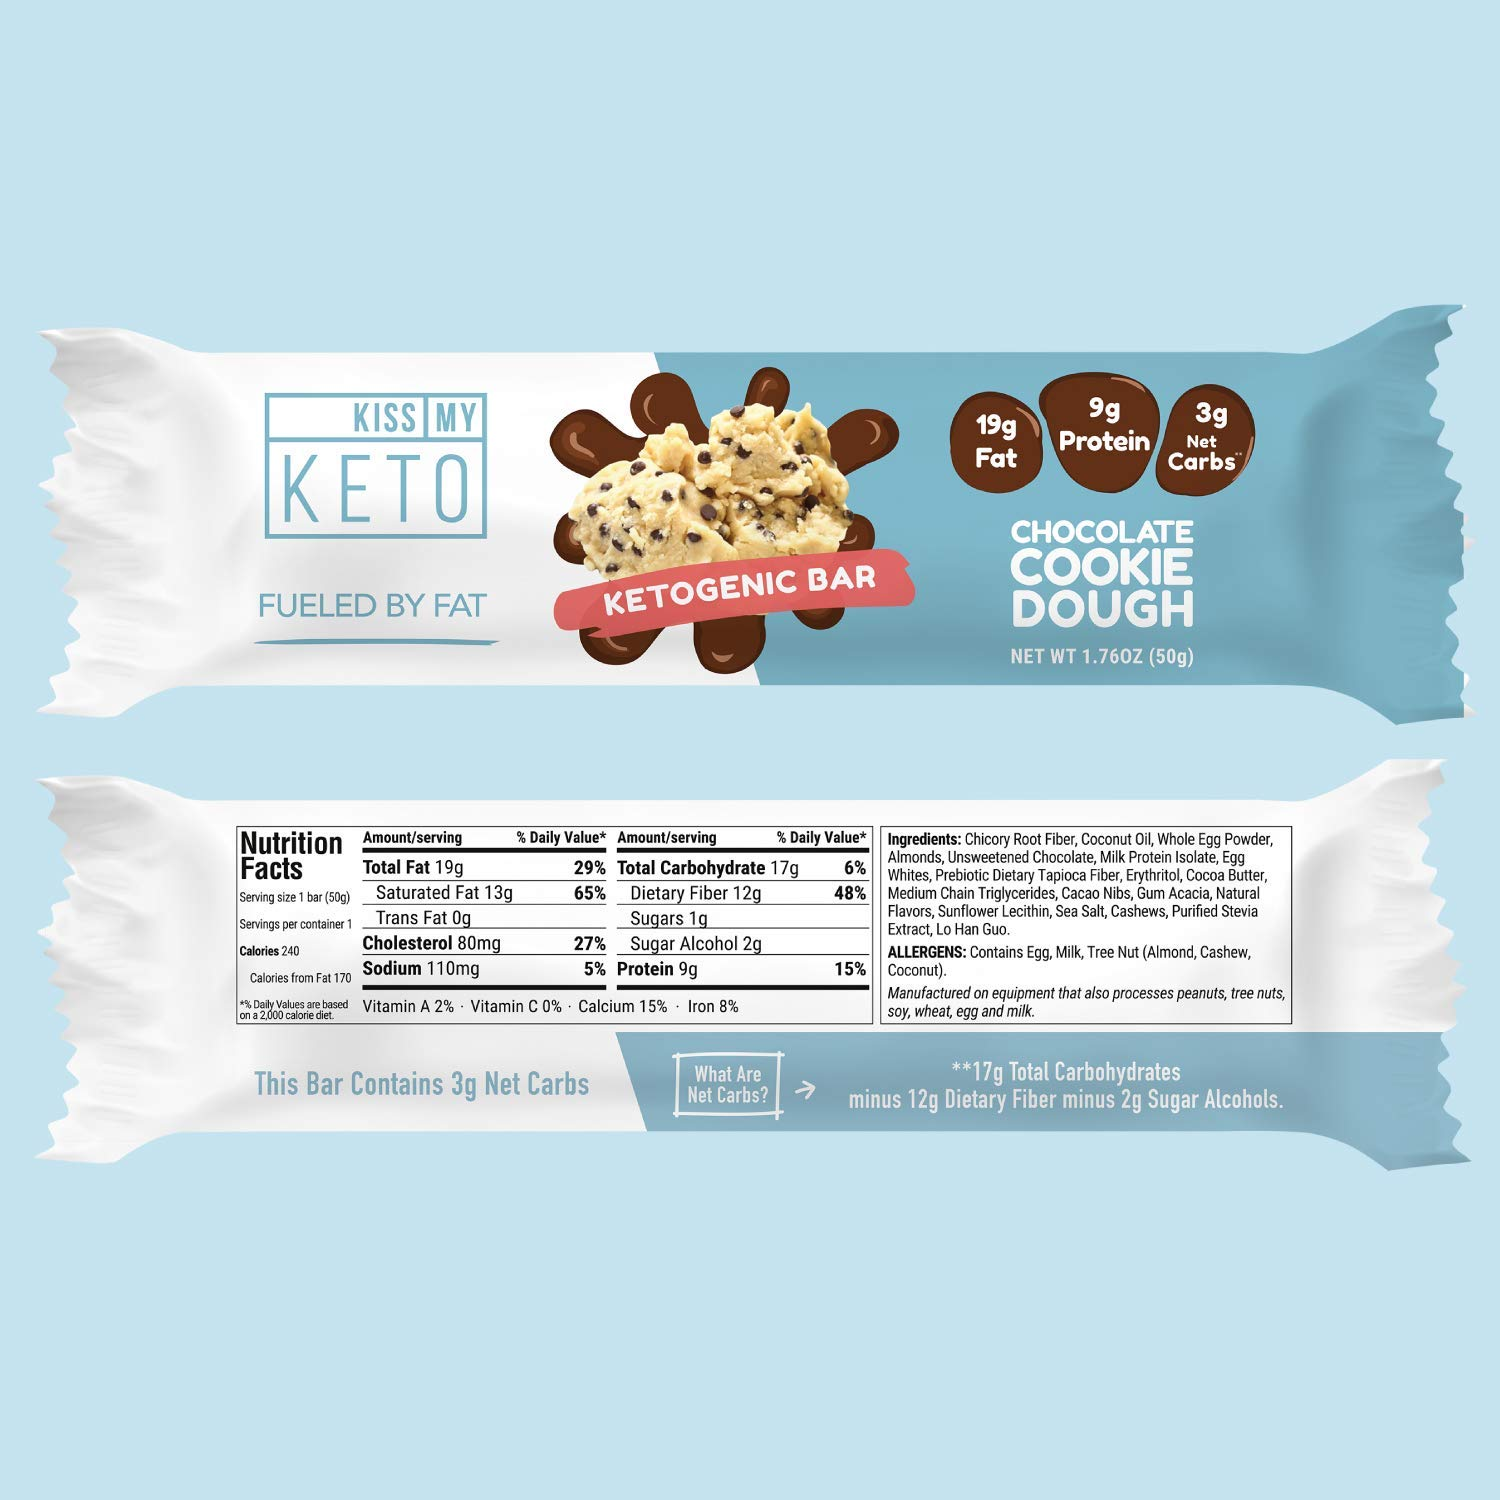 Kiss My Keto Snacks Keto Bars - Keto Chocolate Cookie Dough, Nutritional Keto Food Bars, Paleo, Low Carb/Glycemic Keto Friendly Foods, All Natural On-The-Go Snacks, Quality Fat Bars, 3g Net Carbs by Kiss My Keto (Image #4)